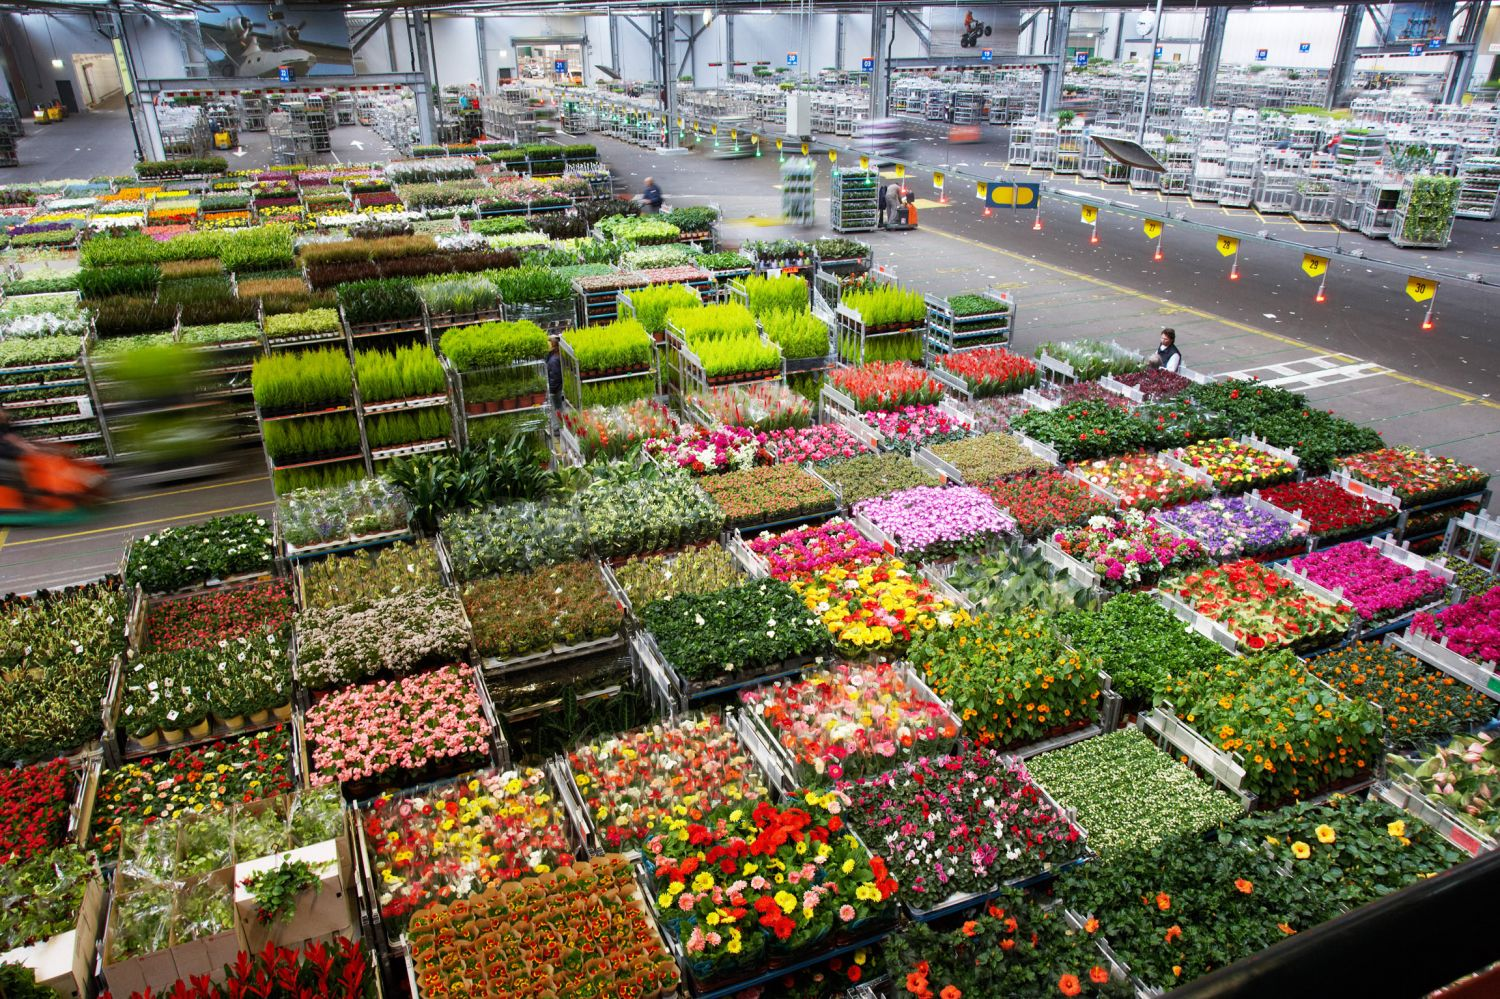 Dutch agricultural exports increased in 2015